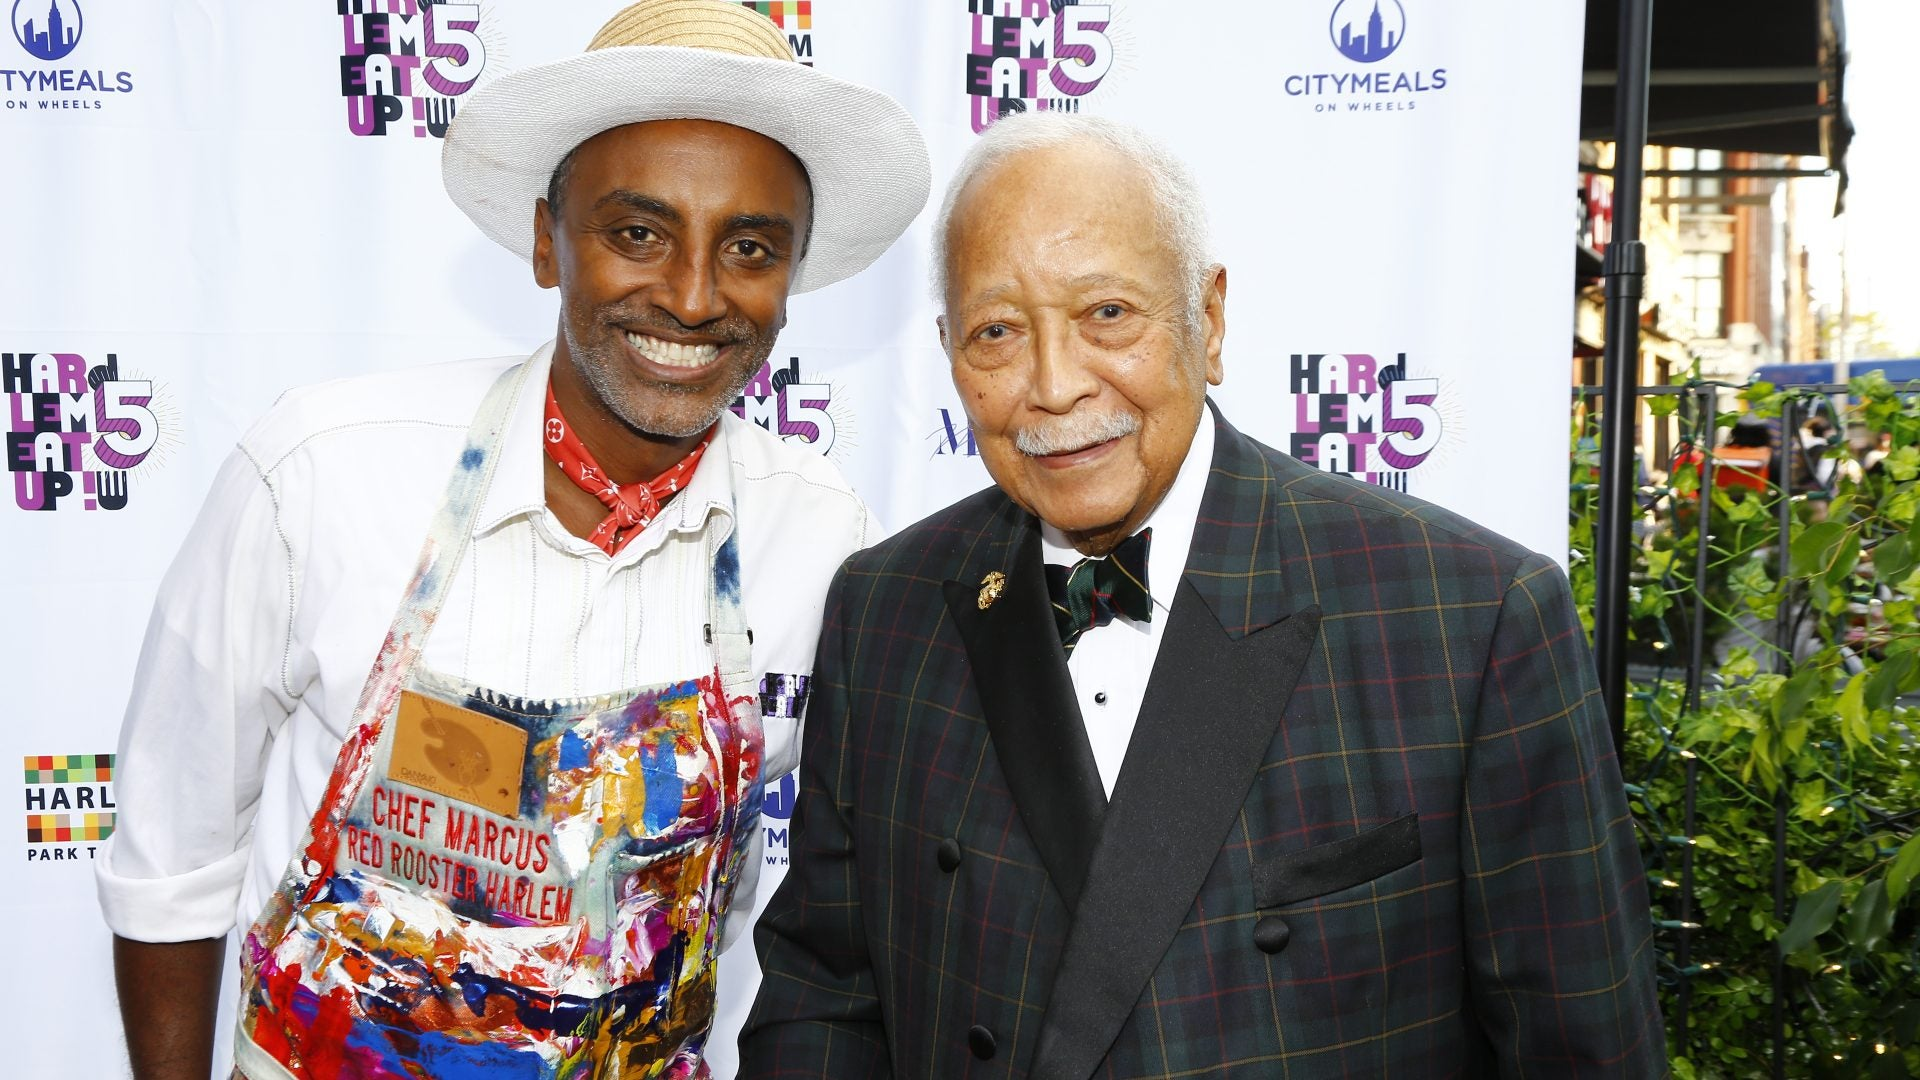 Celebs Celebrate The Best in Black Cuisine at the Annual Harlem Eatup! Festival